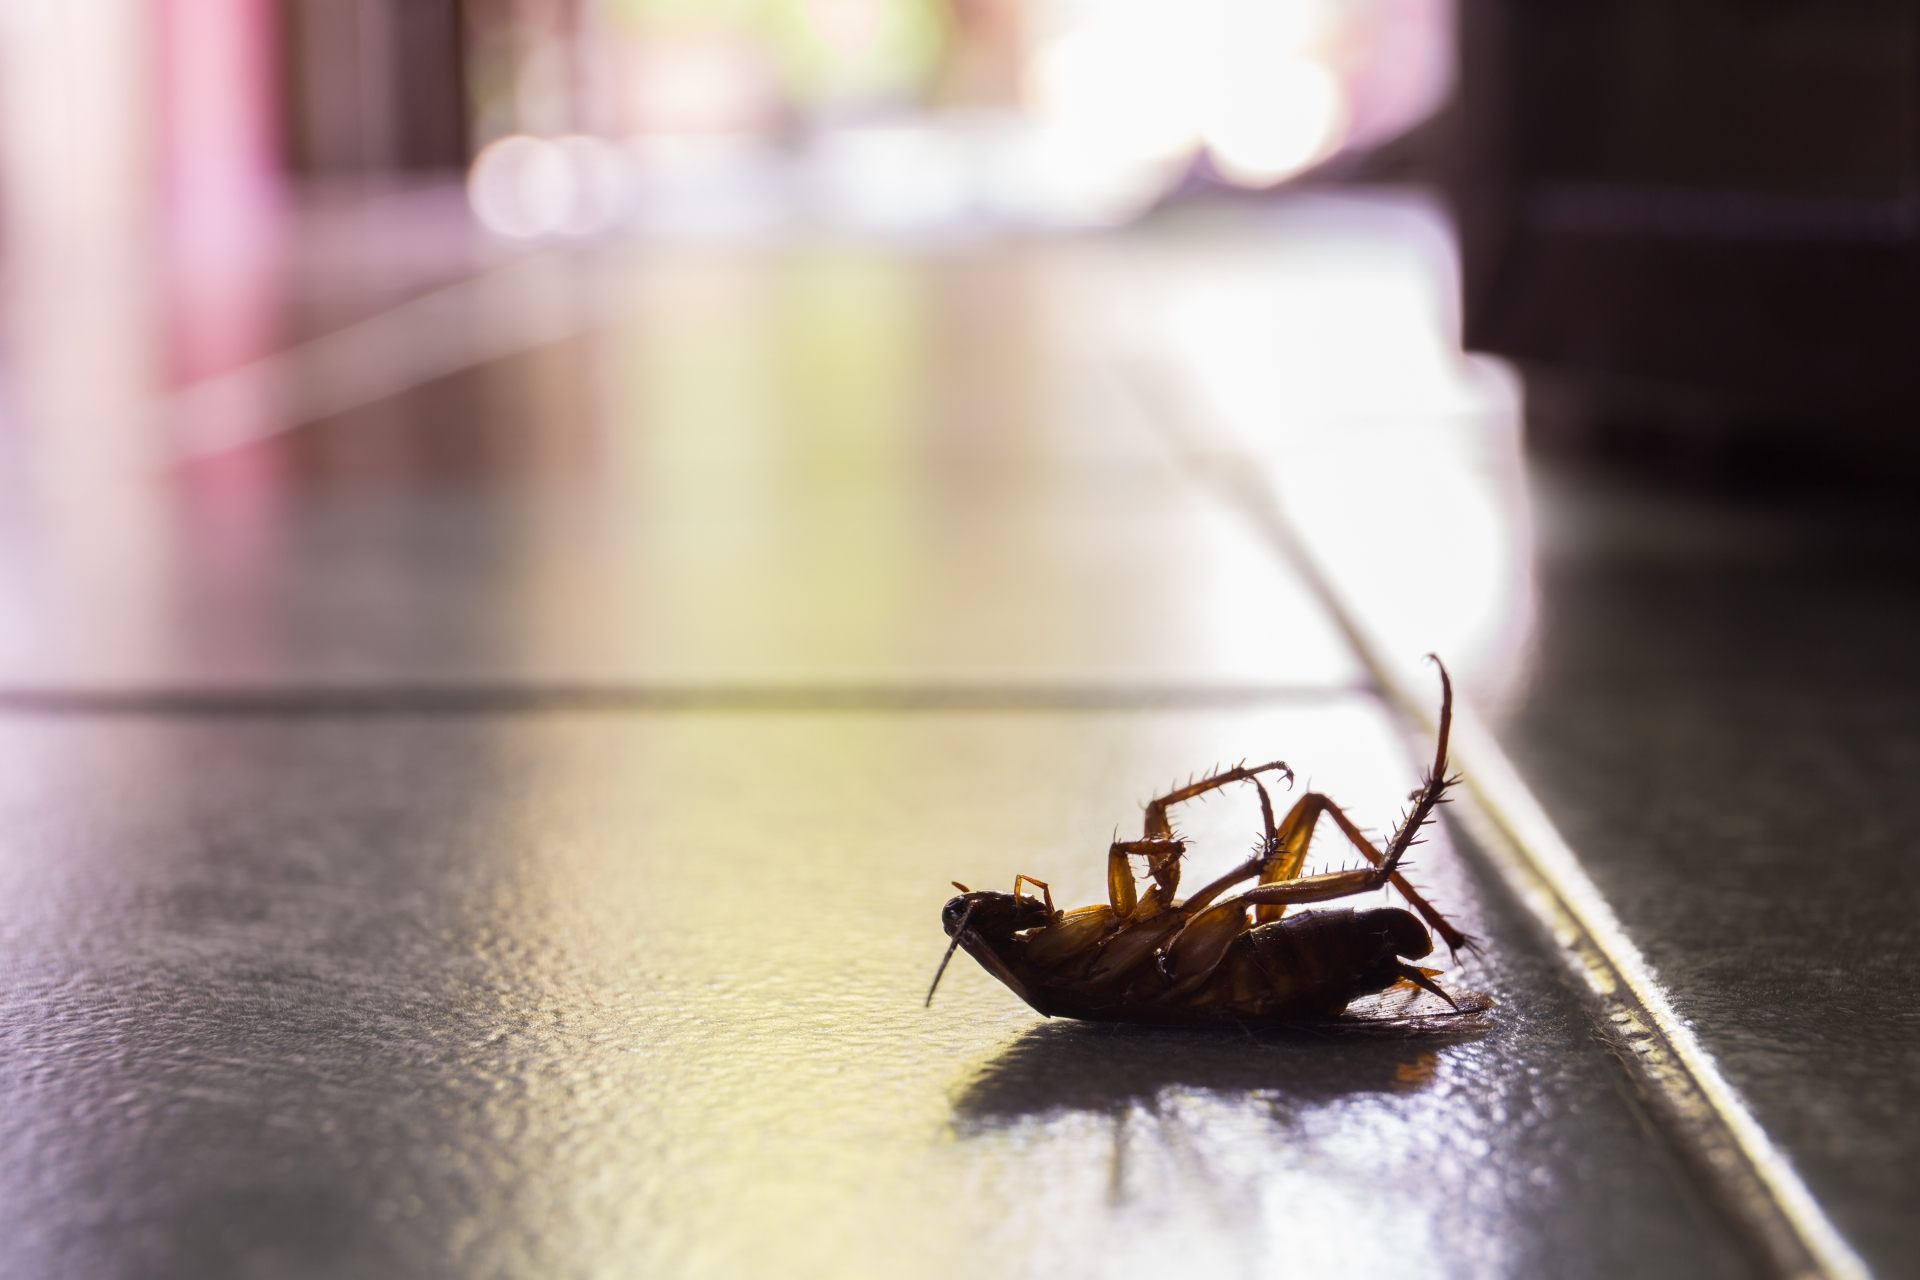 Cockroach Control, Pest Control in Chigwell Row, Chigwell, IG7. Call Now 020 8166 9746